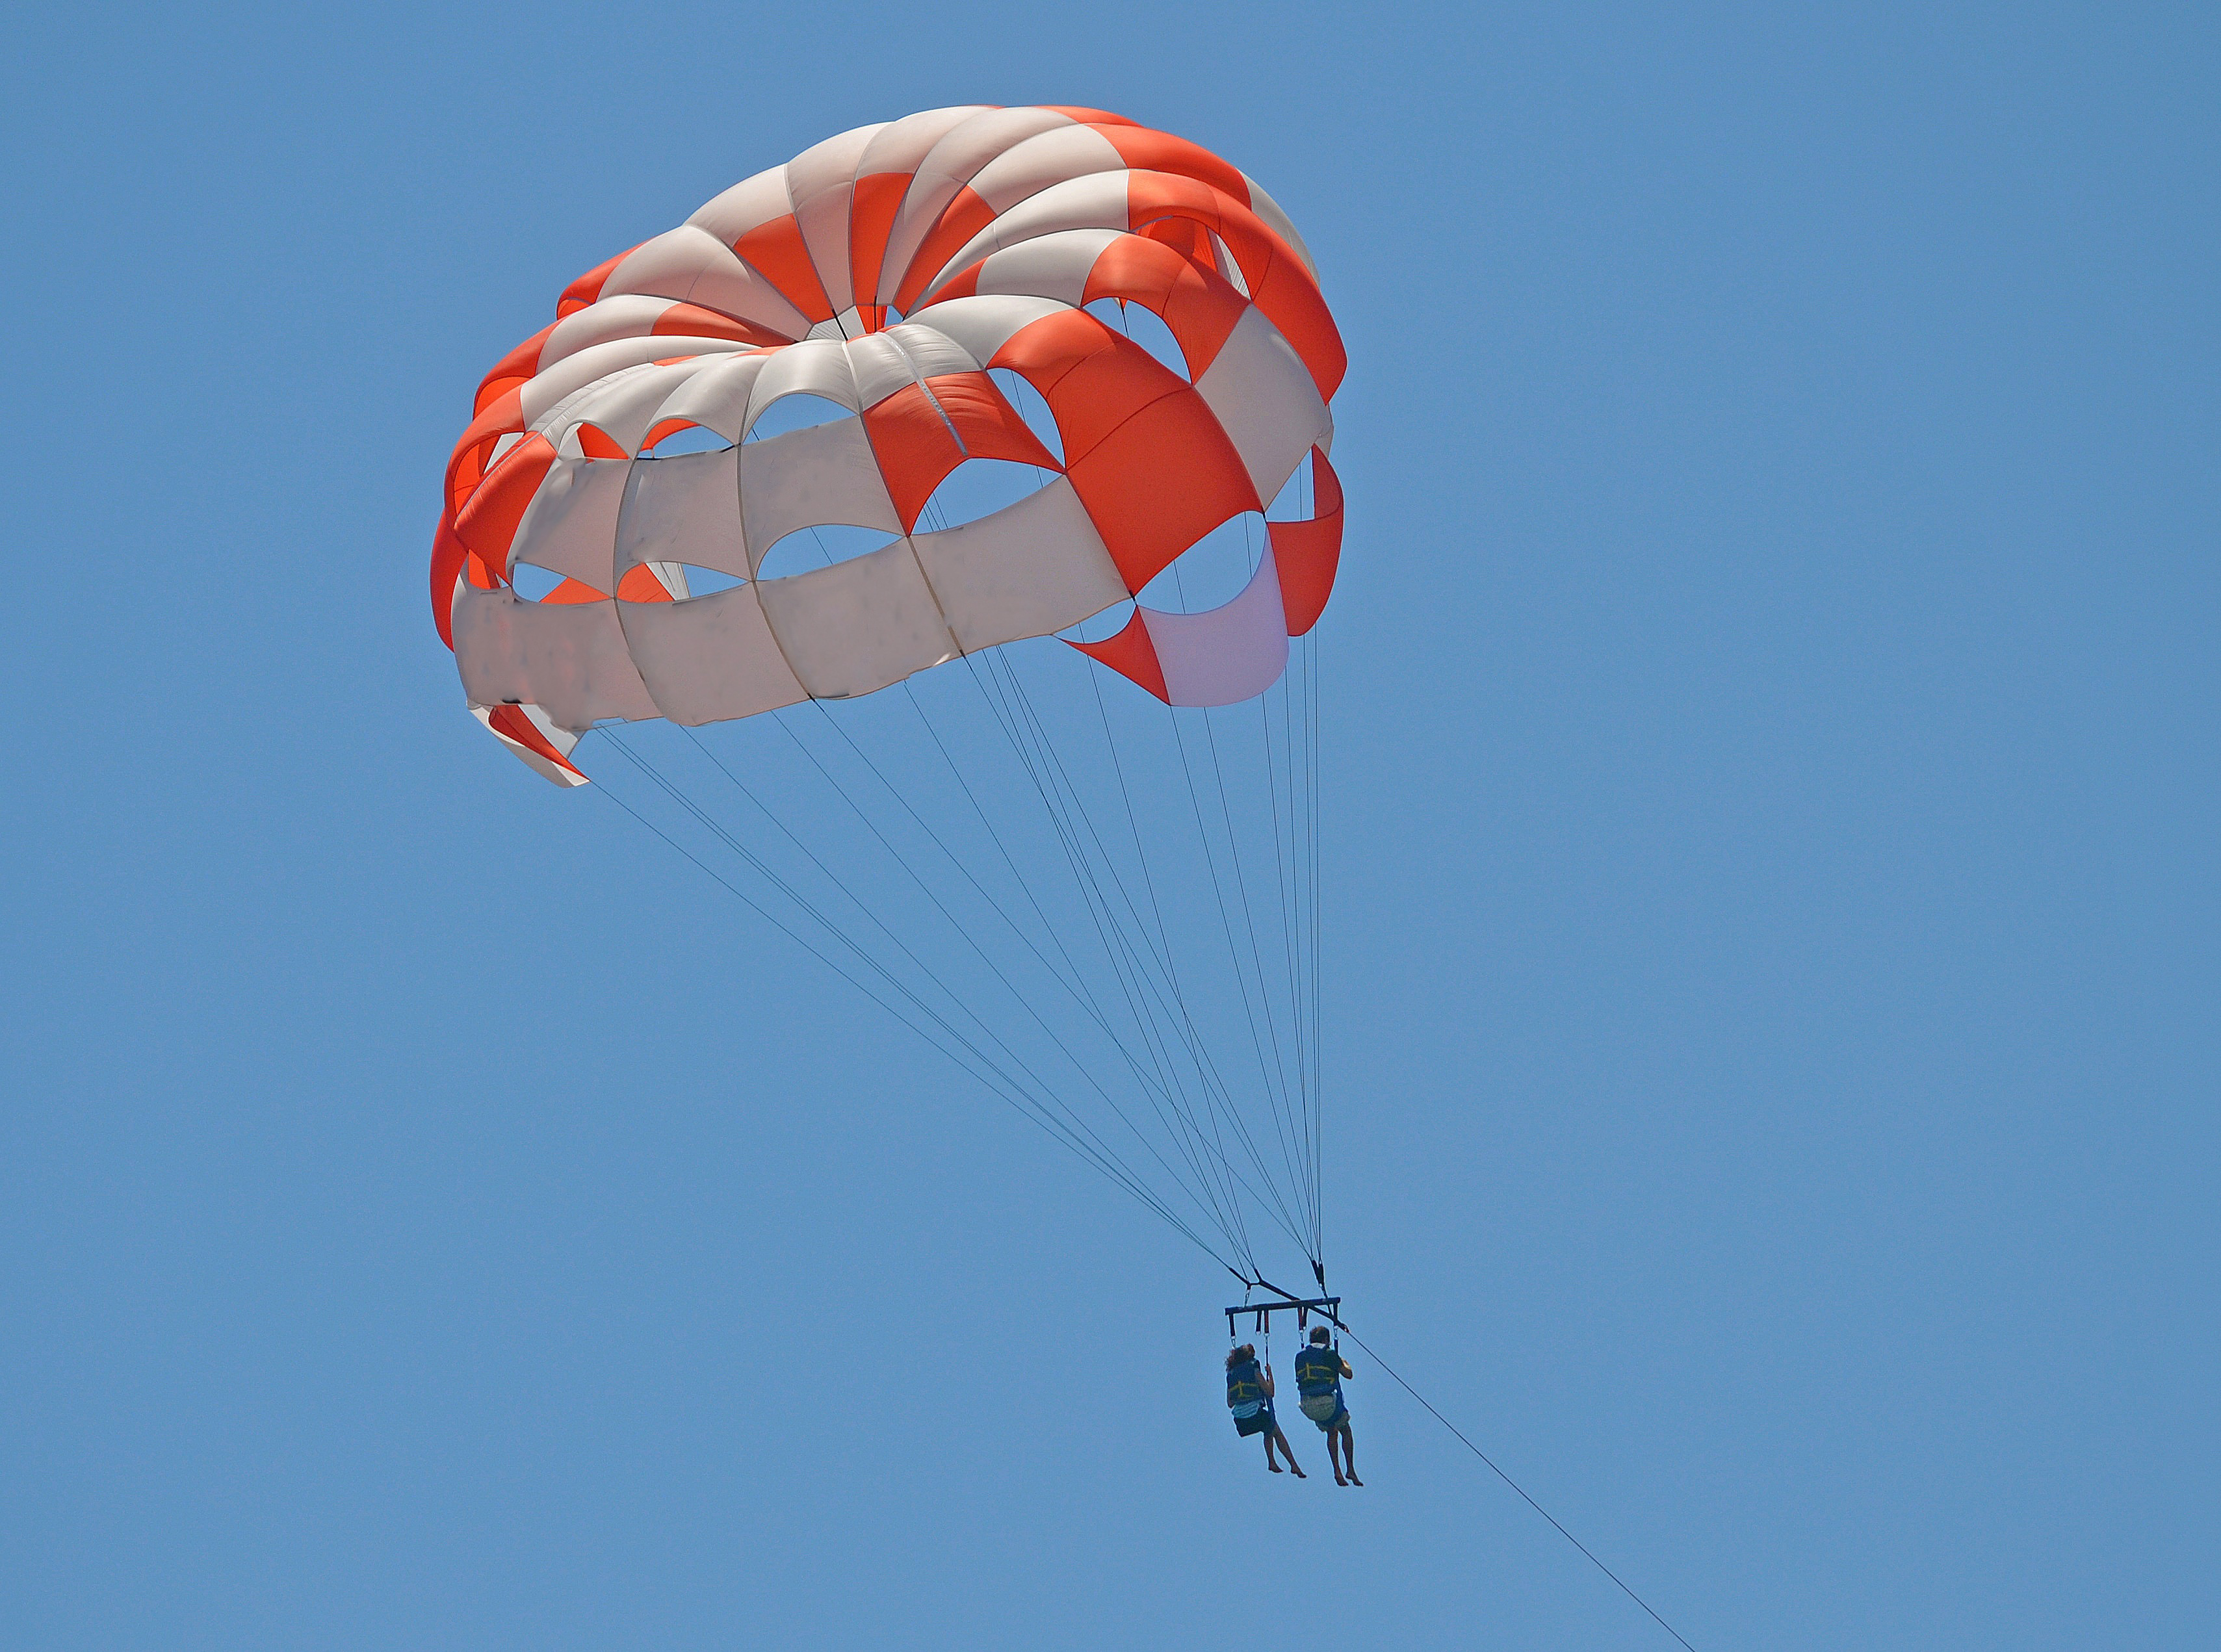 Parachute, air, flying, up, sport